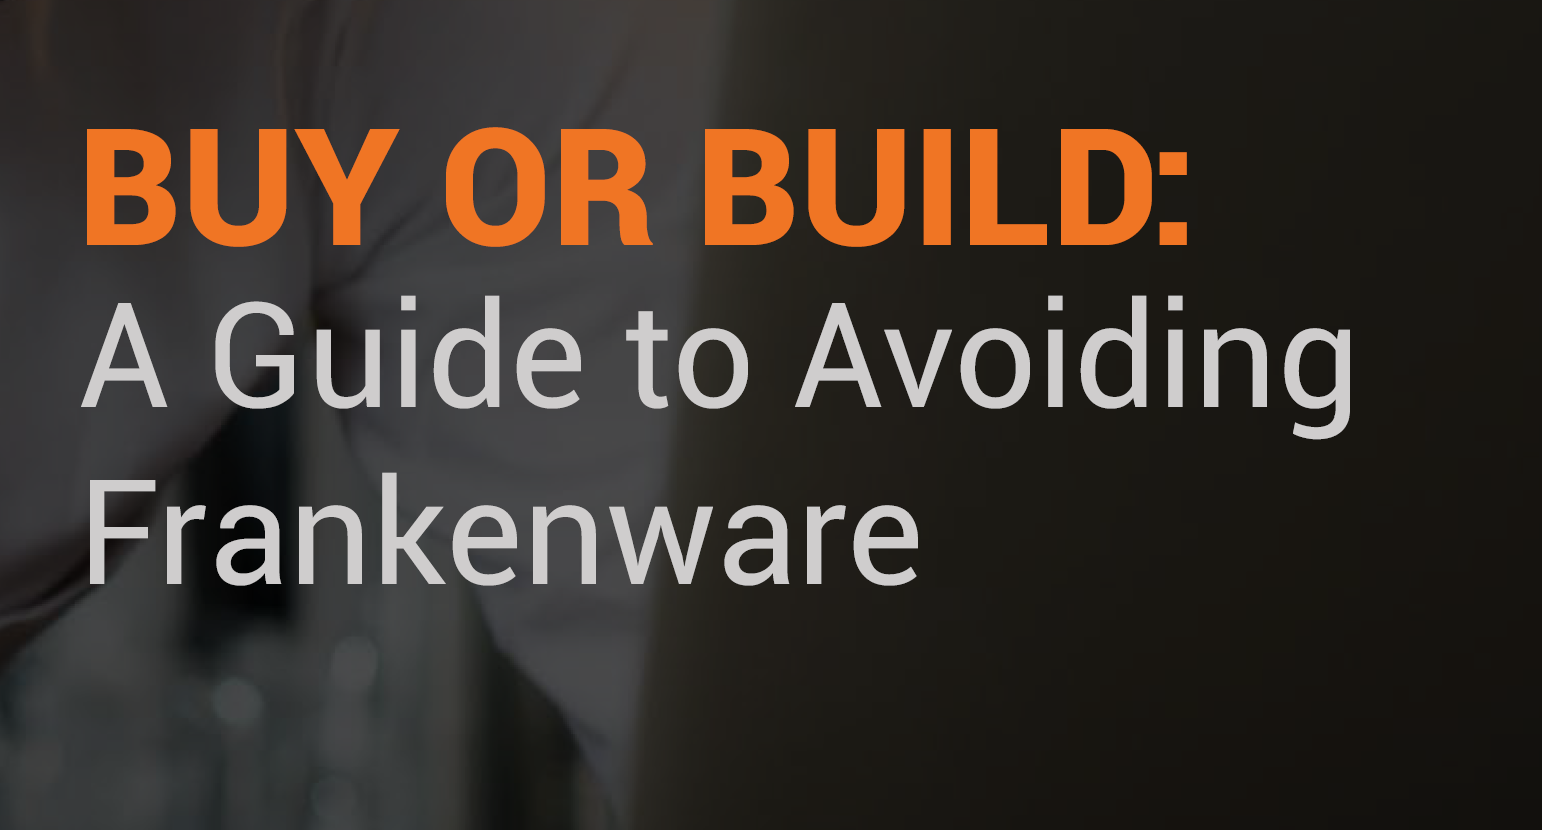 Buy or Build: A guide to avoiding frankenware